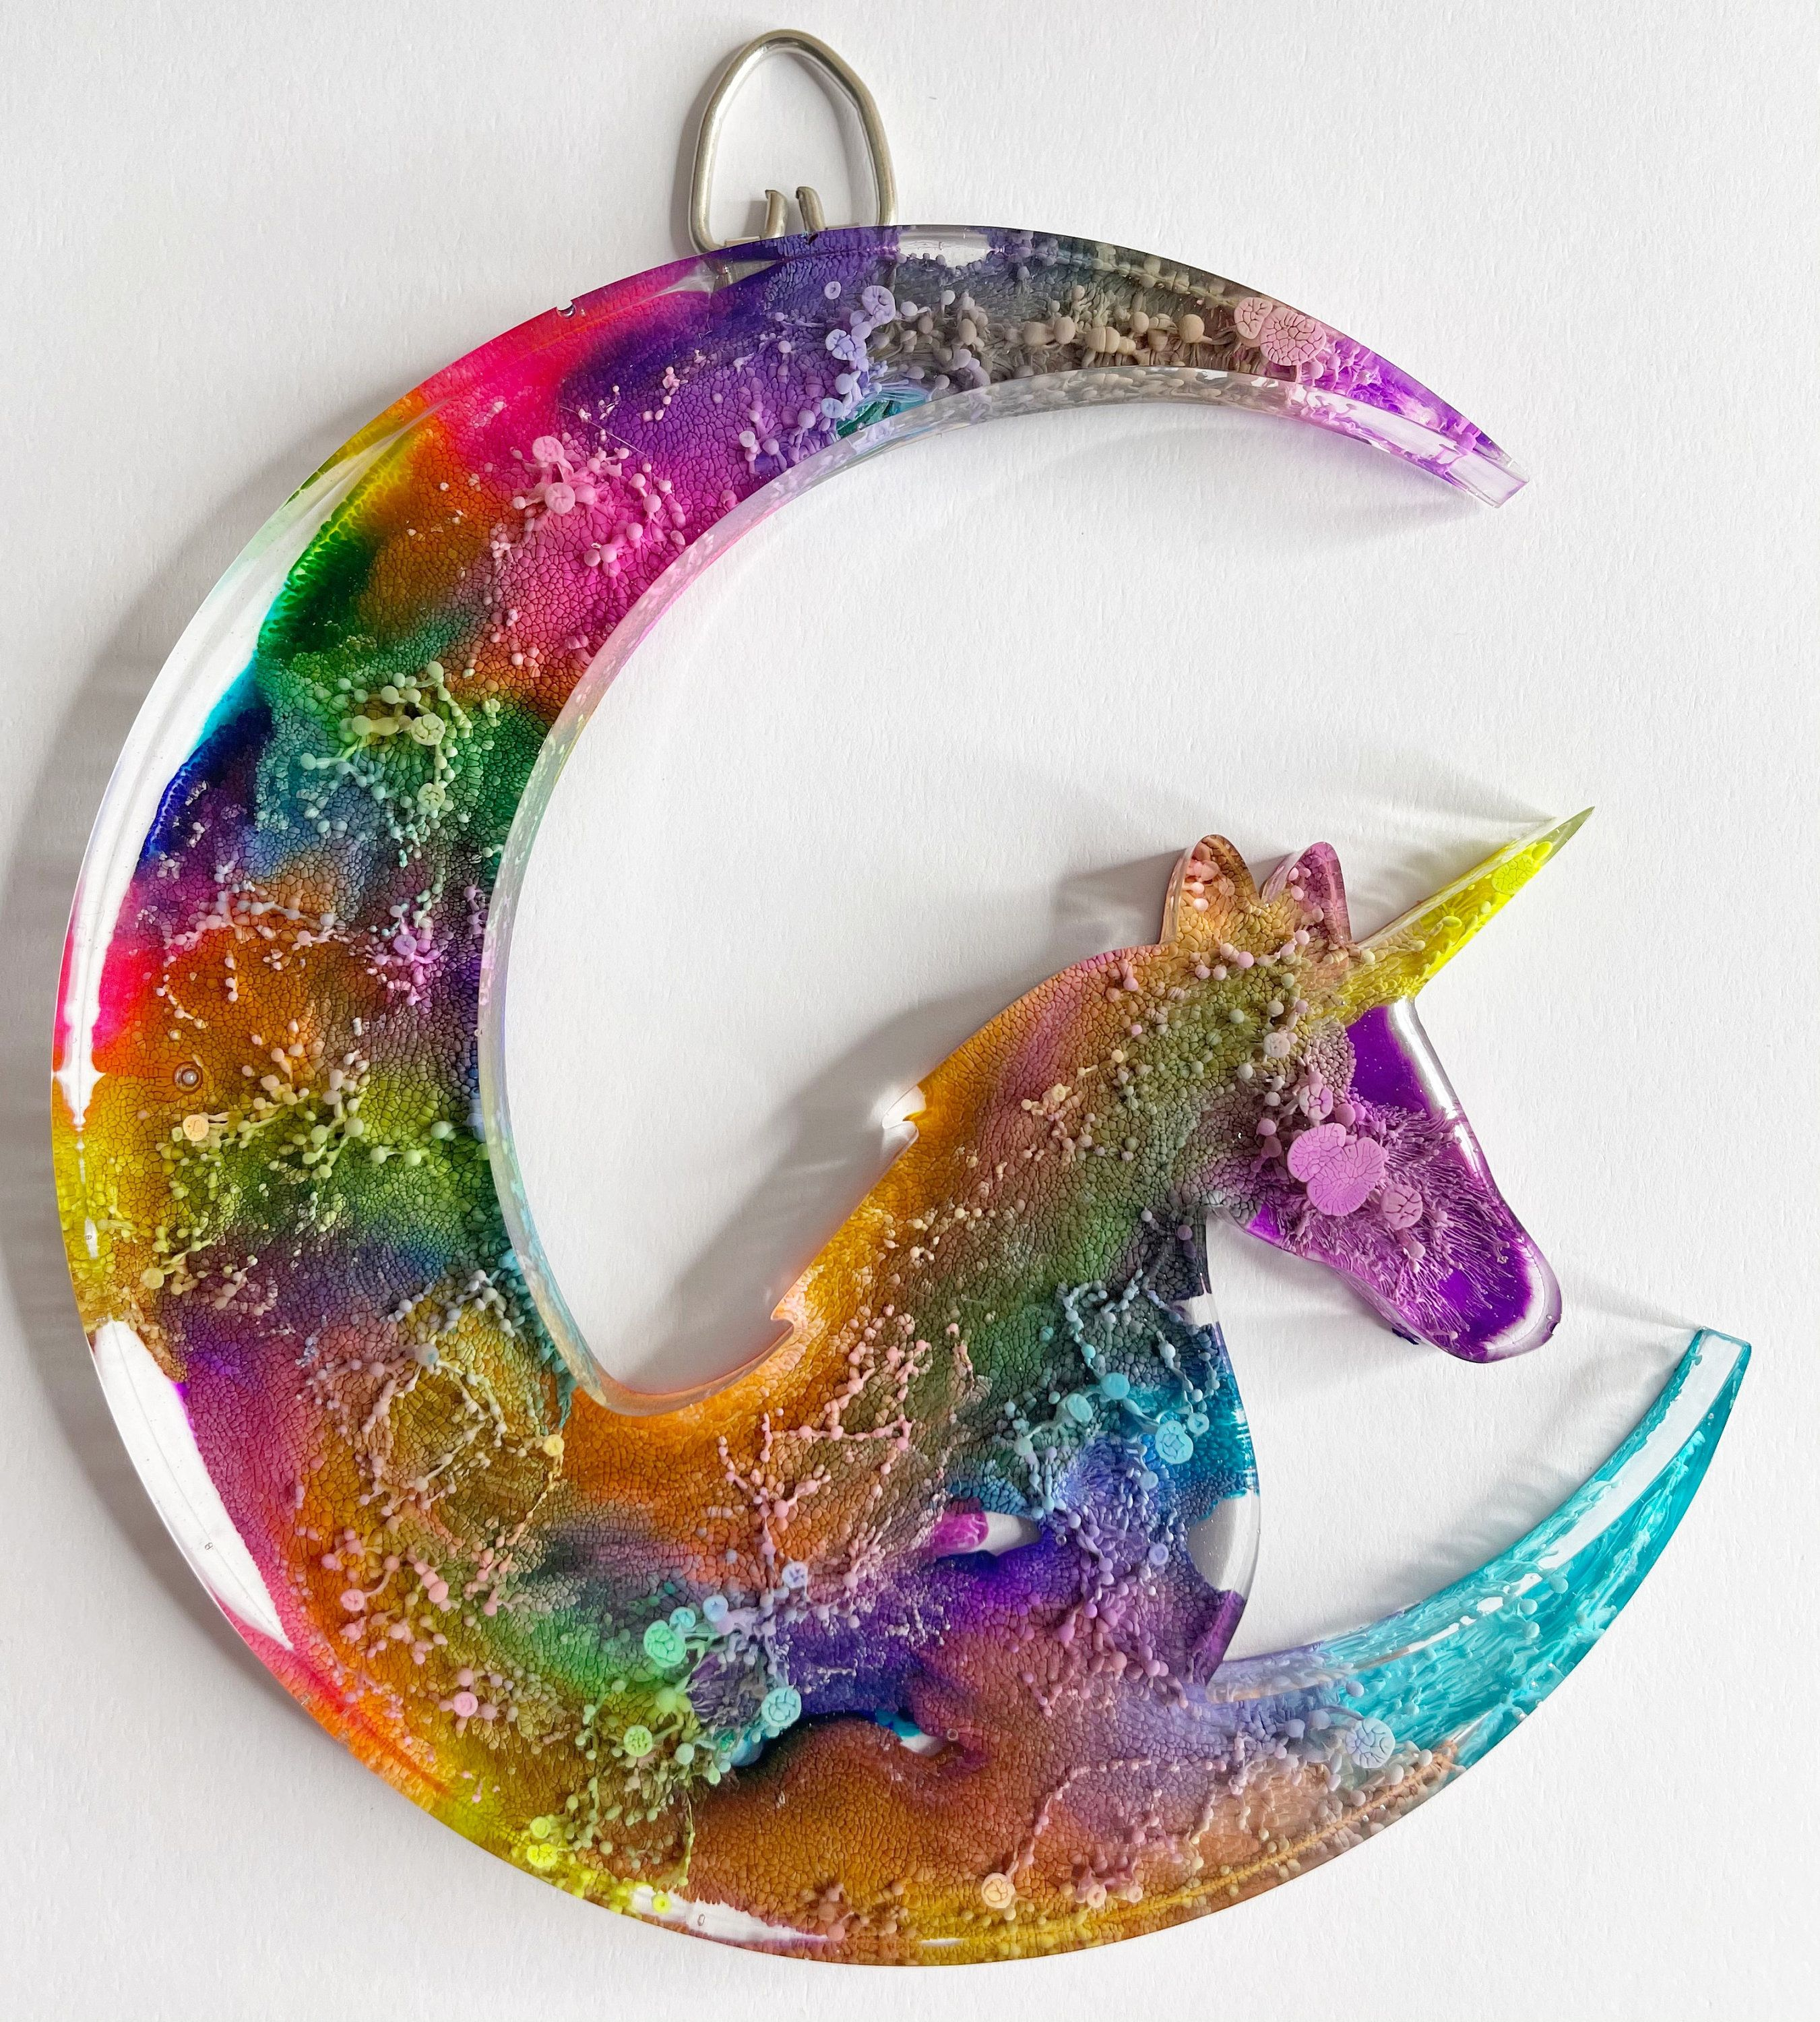 Excited to share this item from my #etsy shop: Tie Dye Unicorn Moon - Handmade Wall Hanging #unicorn #moon #tiedye #colorful #homedecor #handmade #unique #gallerywall #oneofakind #rainbow